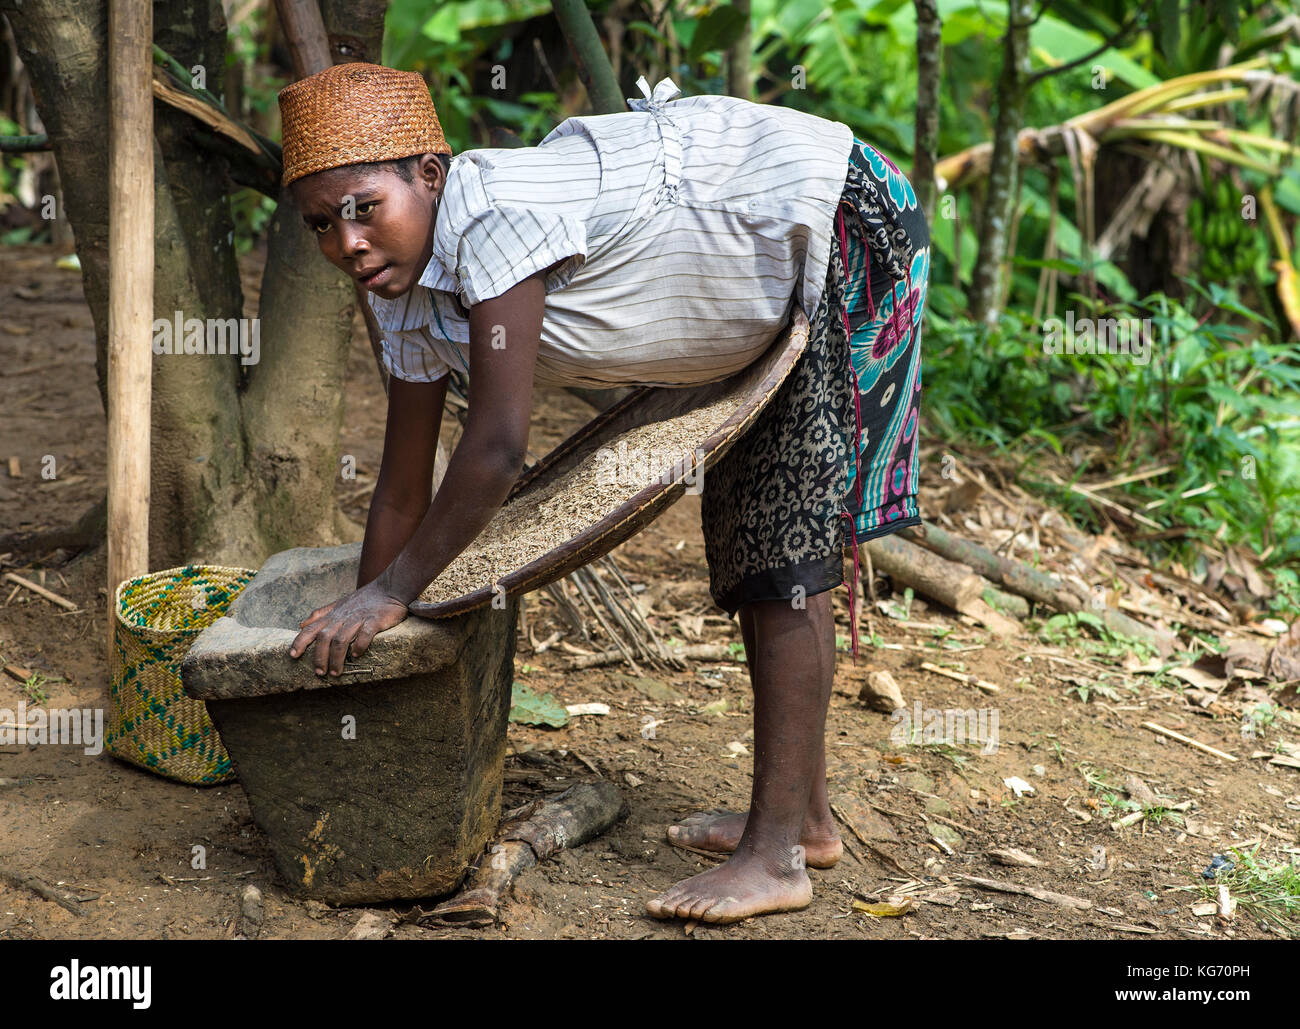 Woman filling a sieve with pounded rice, Ambavaniasy, Madagascar - Stock Image